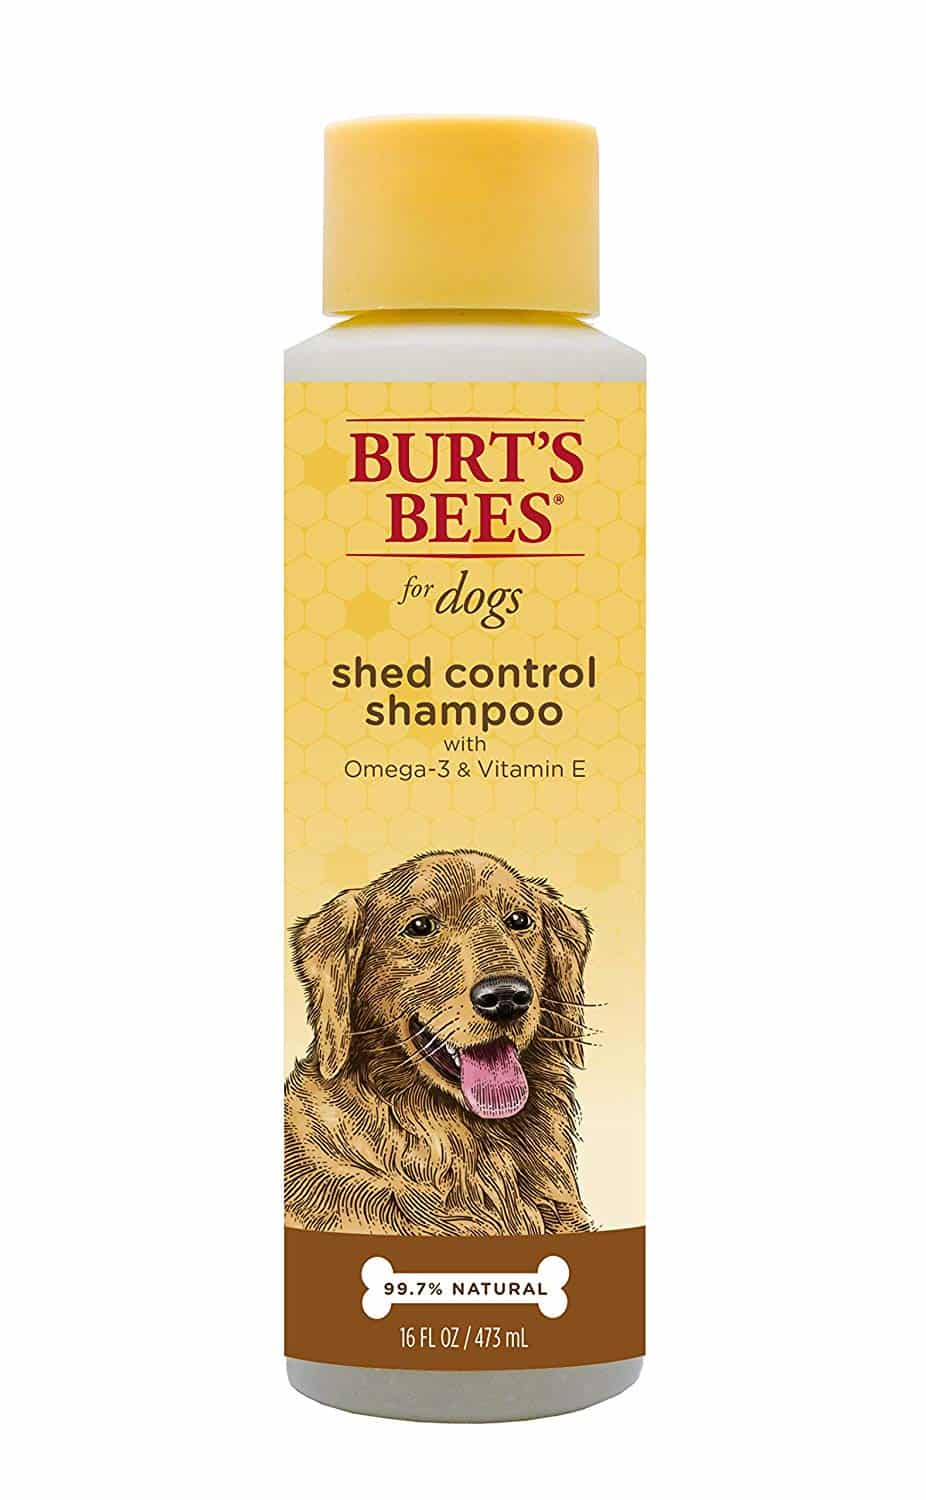 Burt's Bees All-Natural Shampoo- shed and odor control